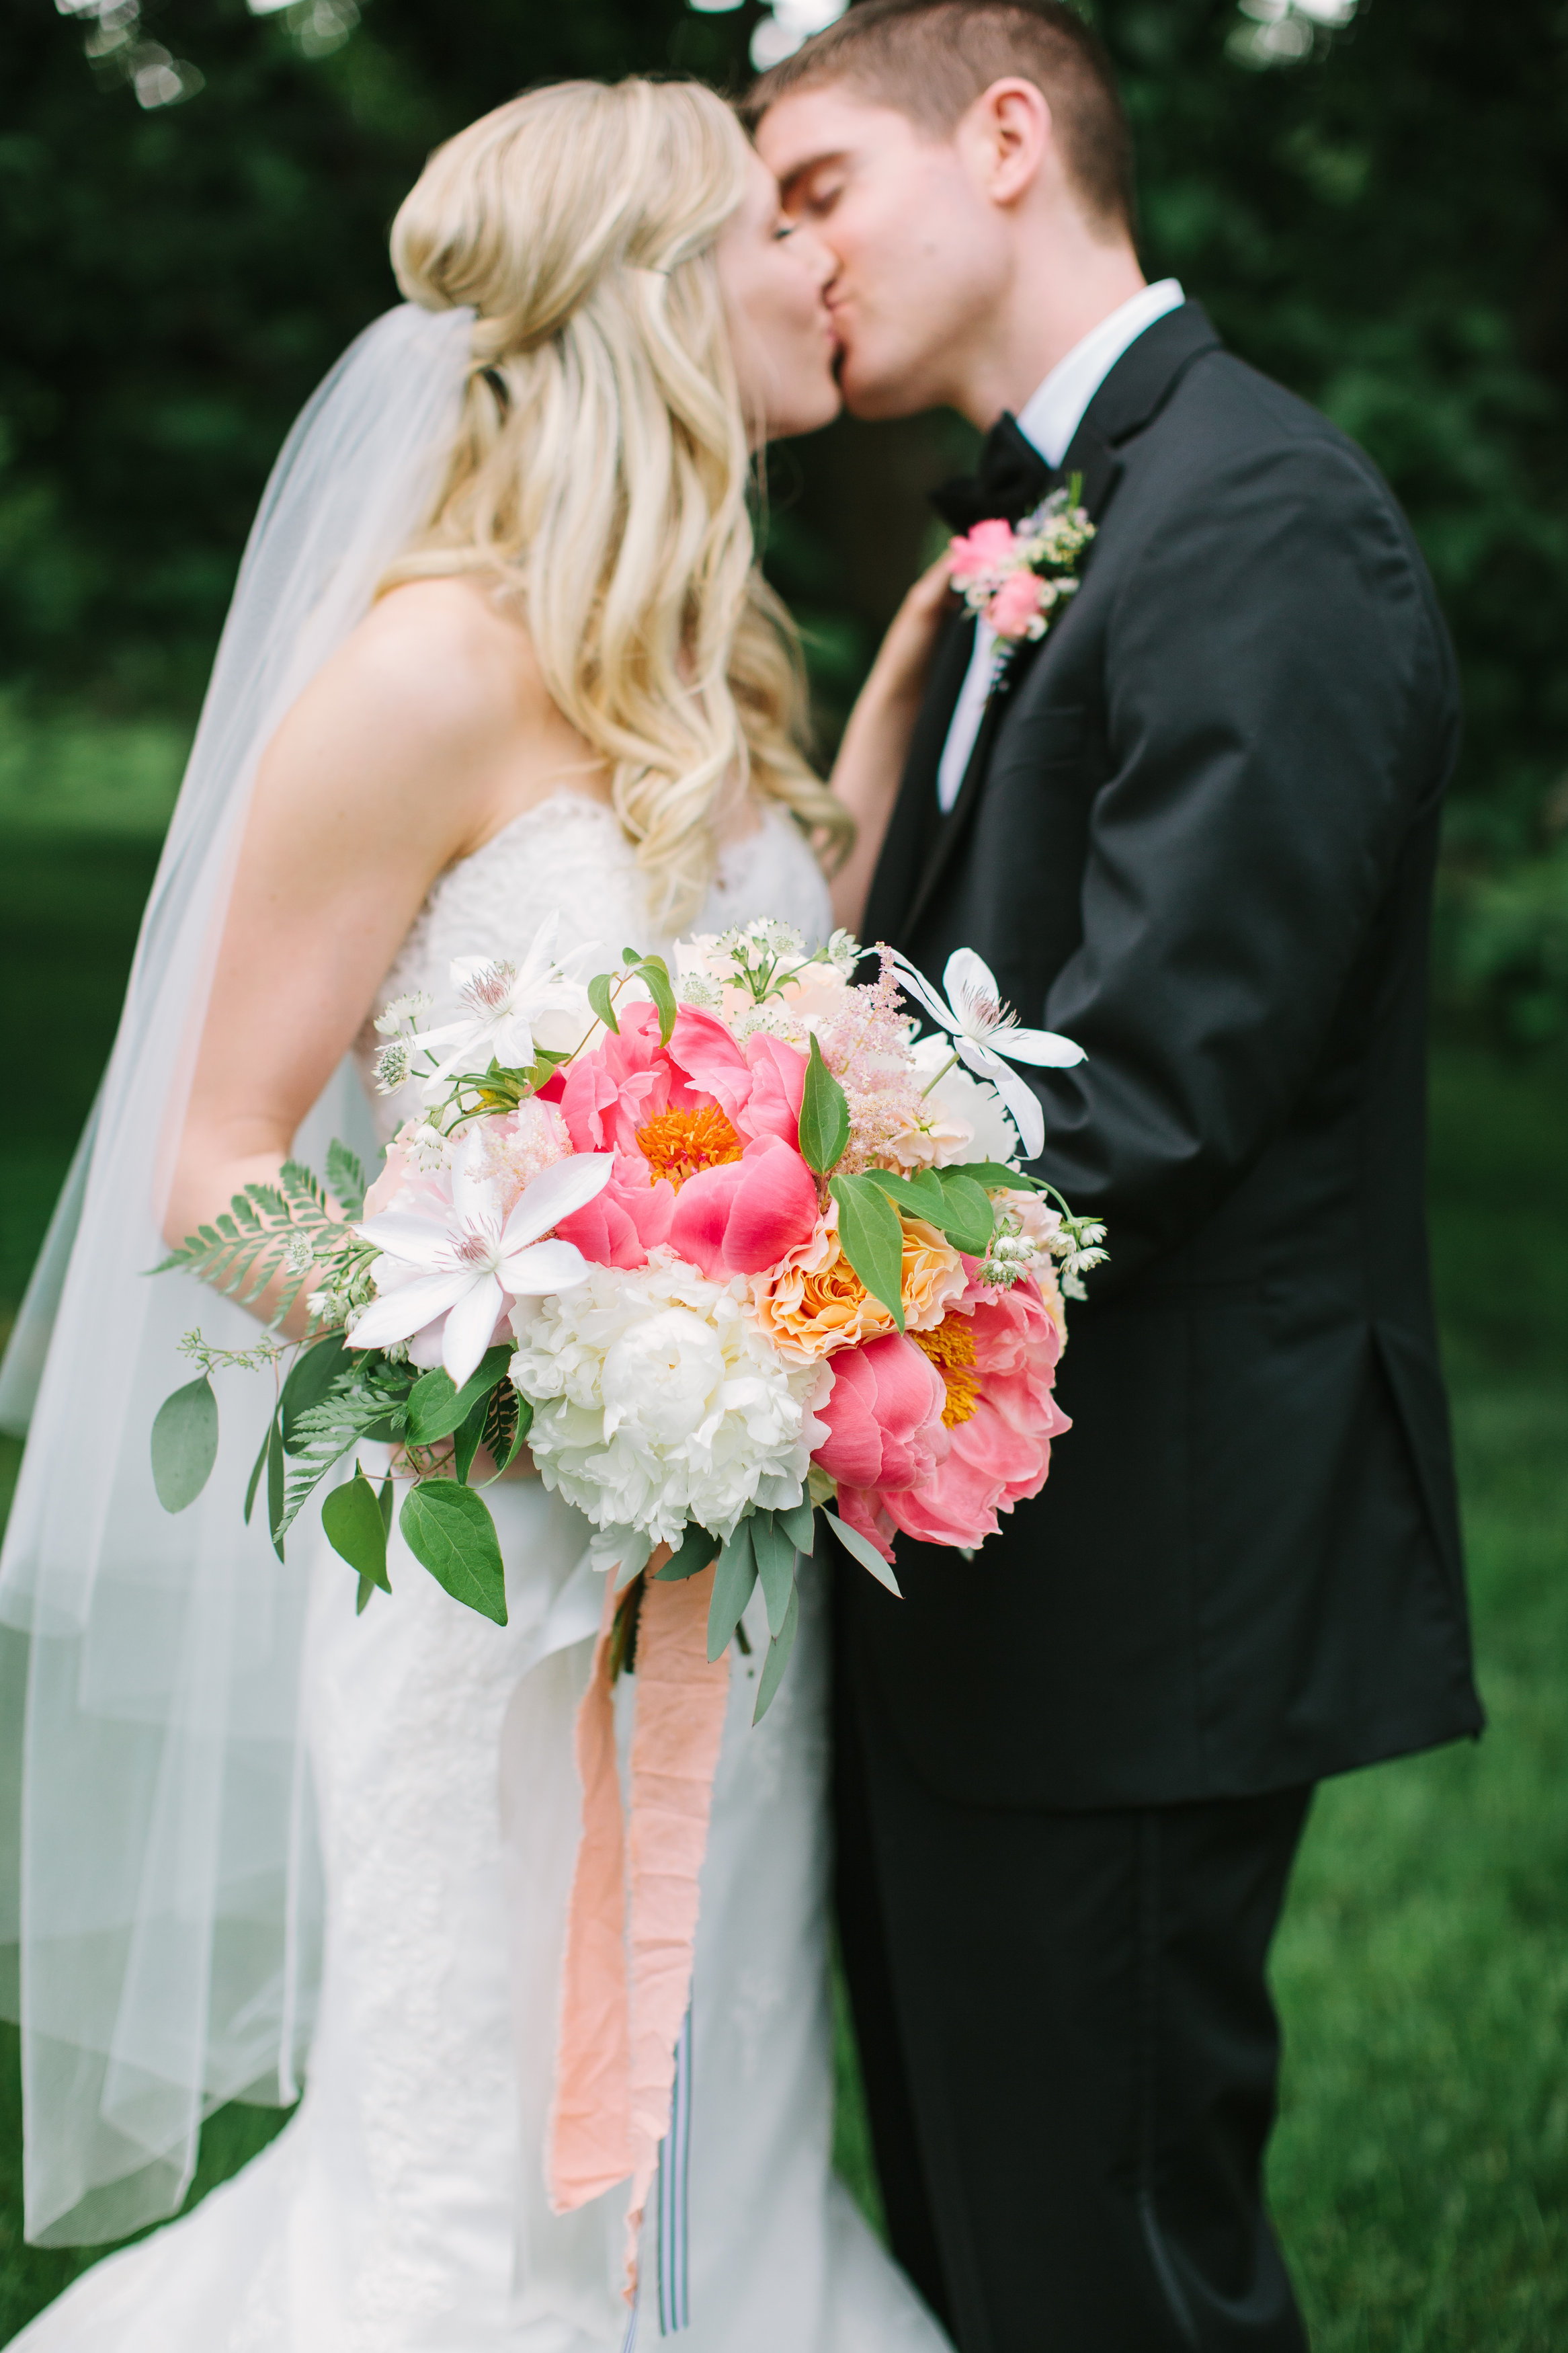 Image by Kelsey Tice Photography